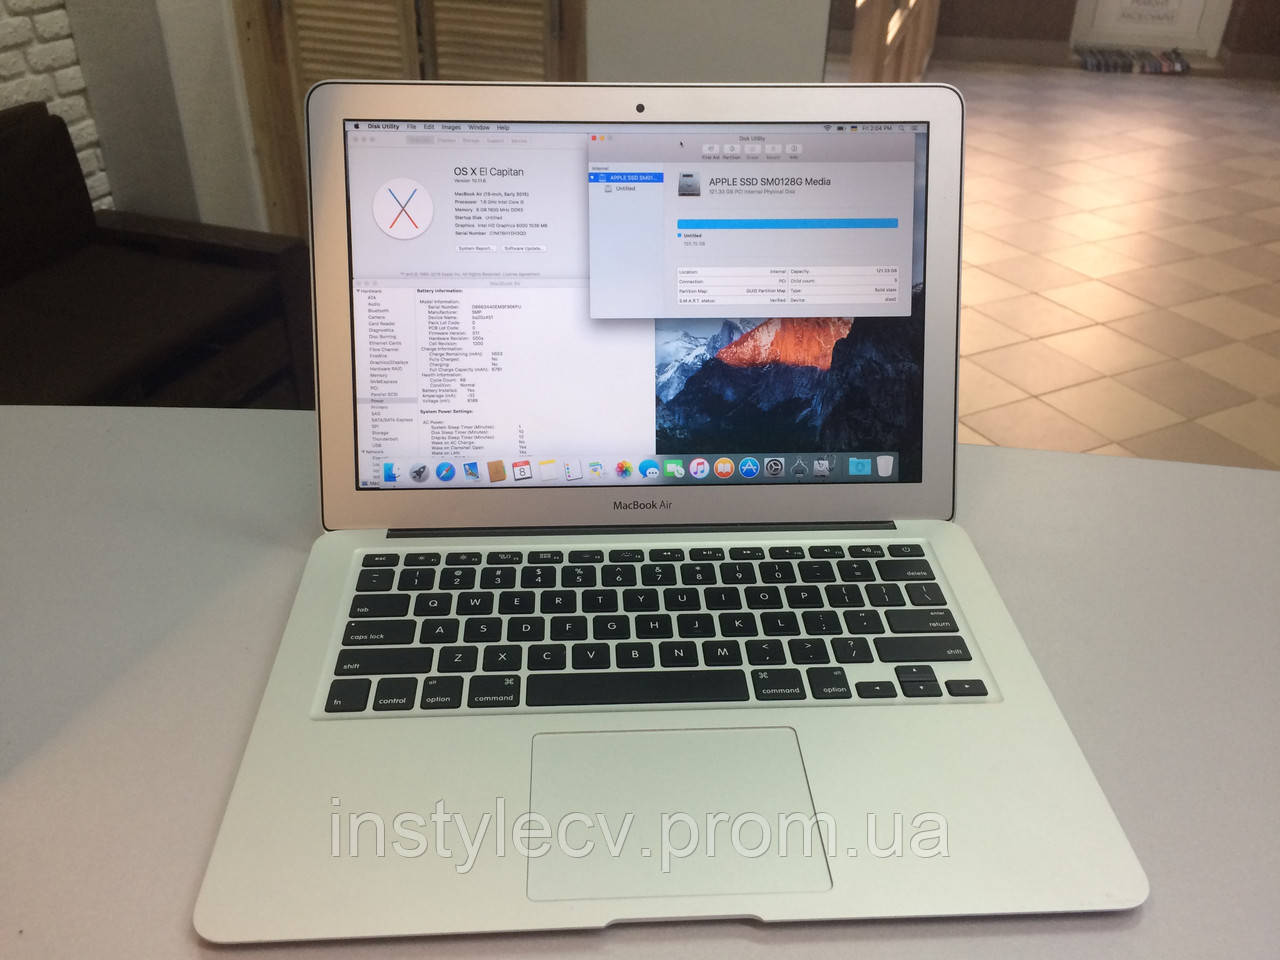 Apple, macBook Air - Technical MacBook, pro 13 with Retina display (MF839) 2015